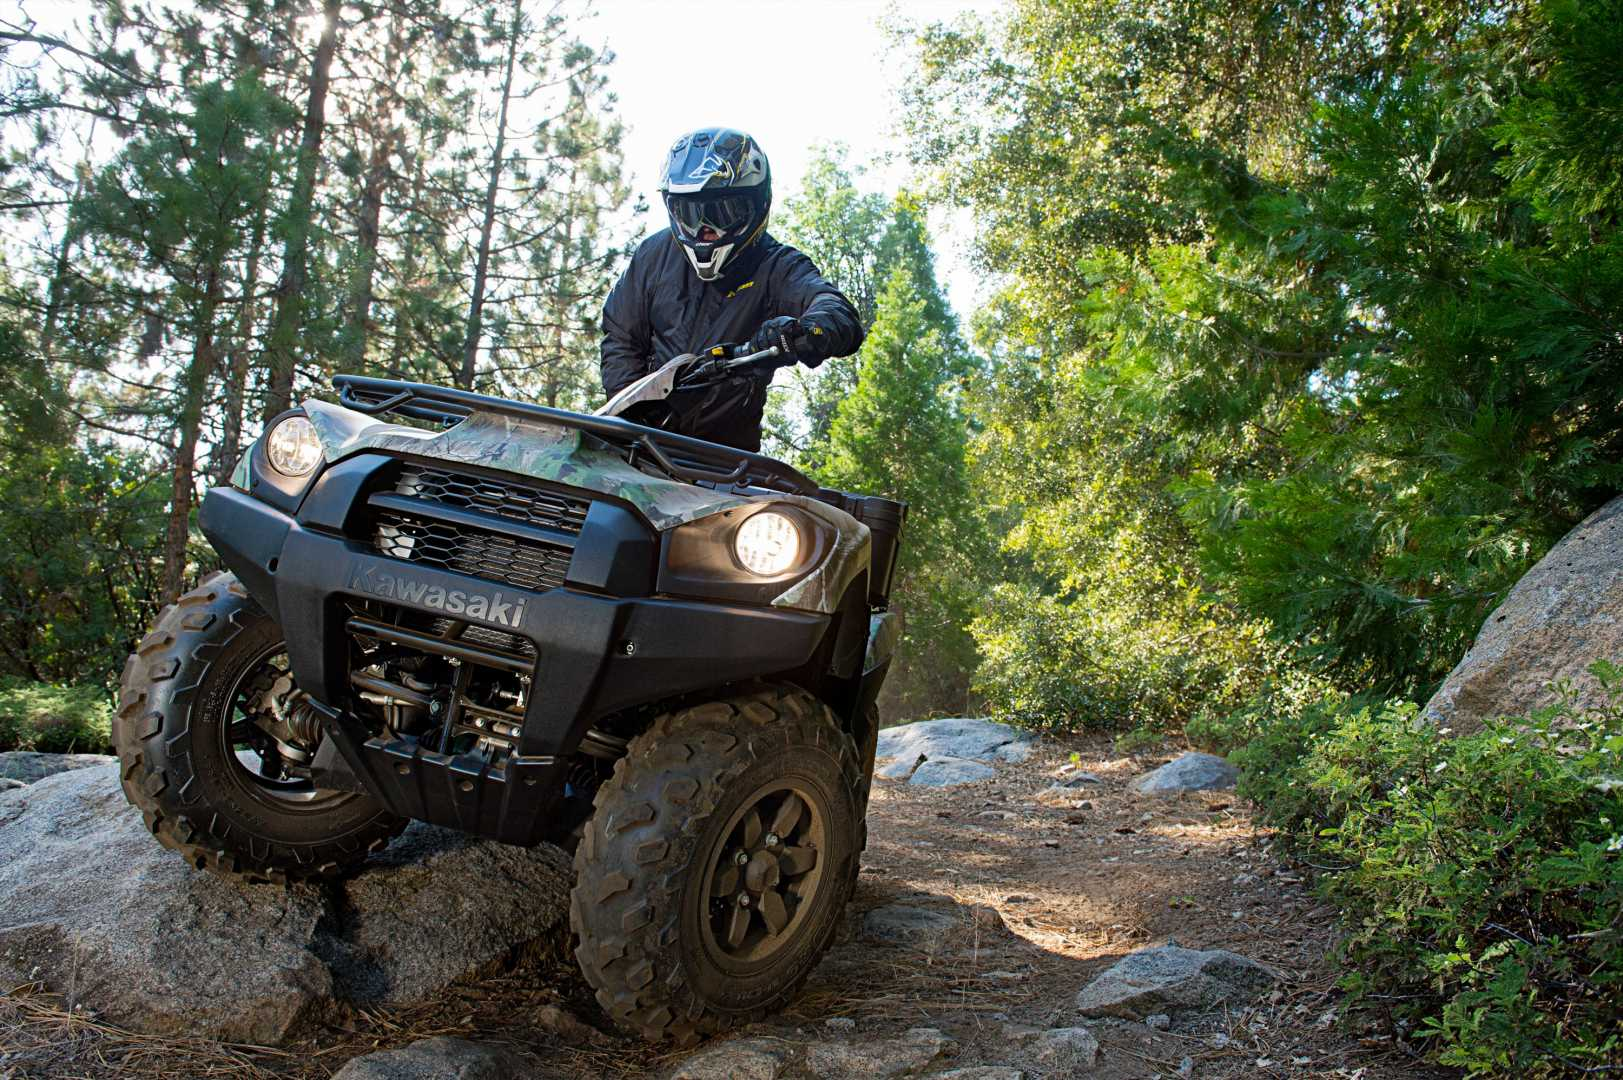 2015 Kawasaki Brute Force 750 4x4i EPS Action 20 High